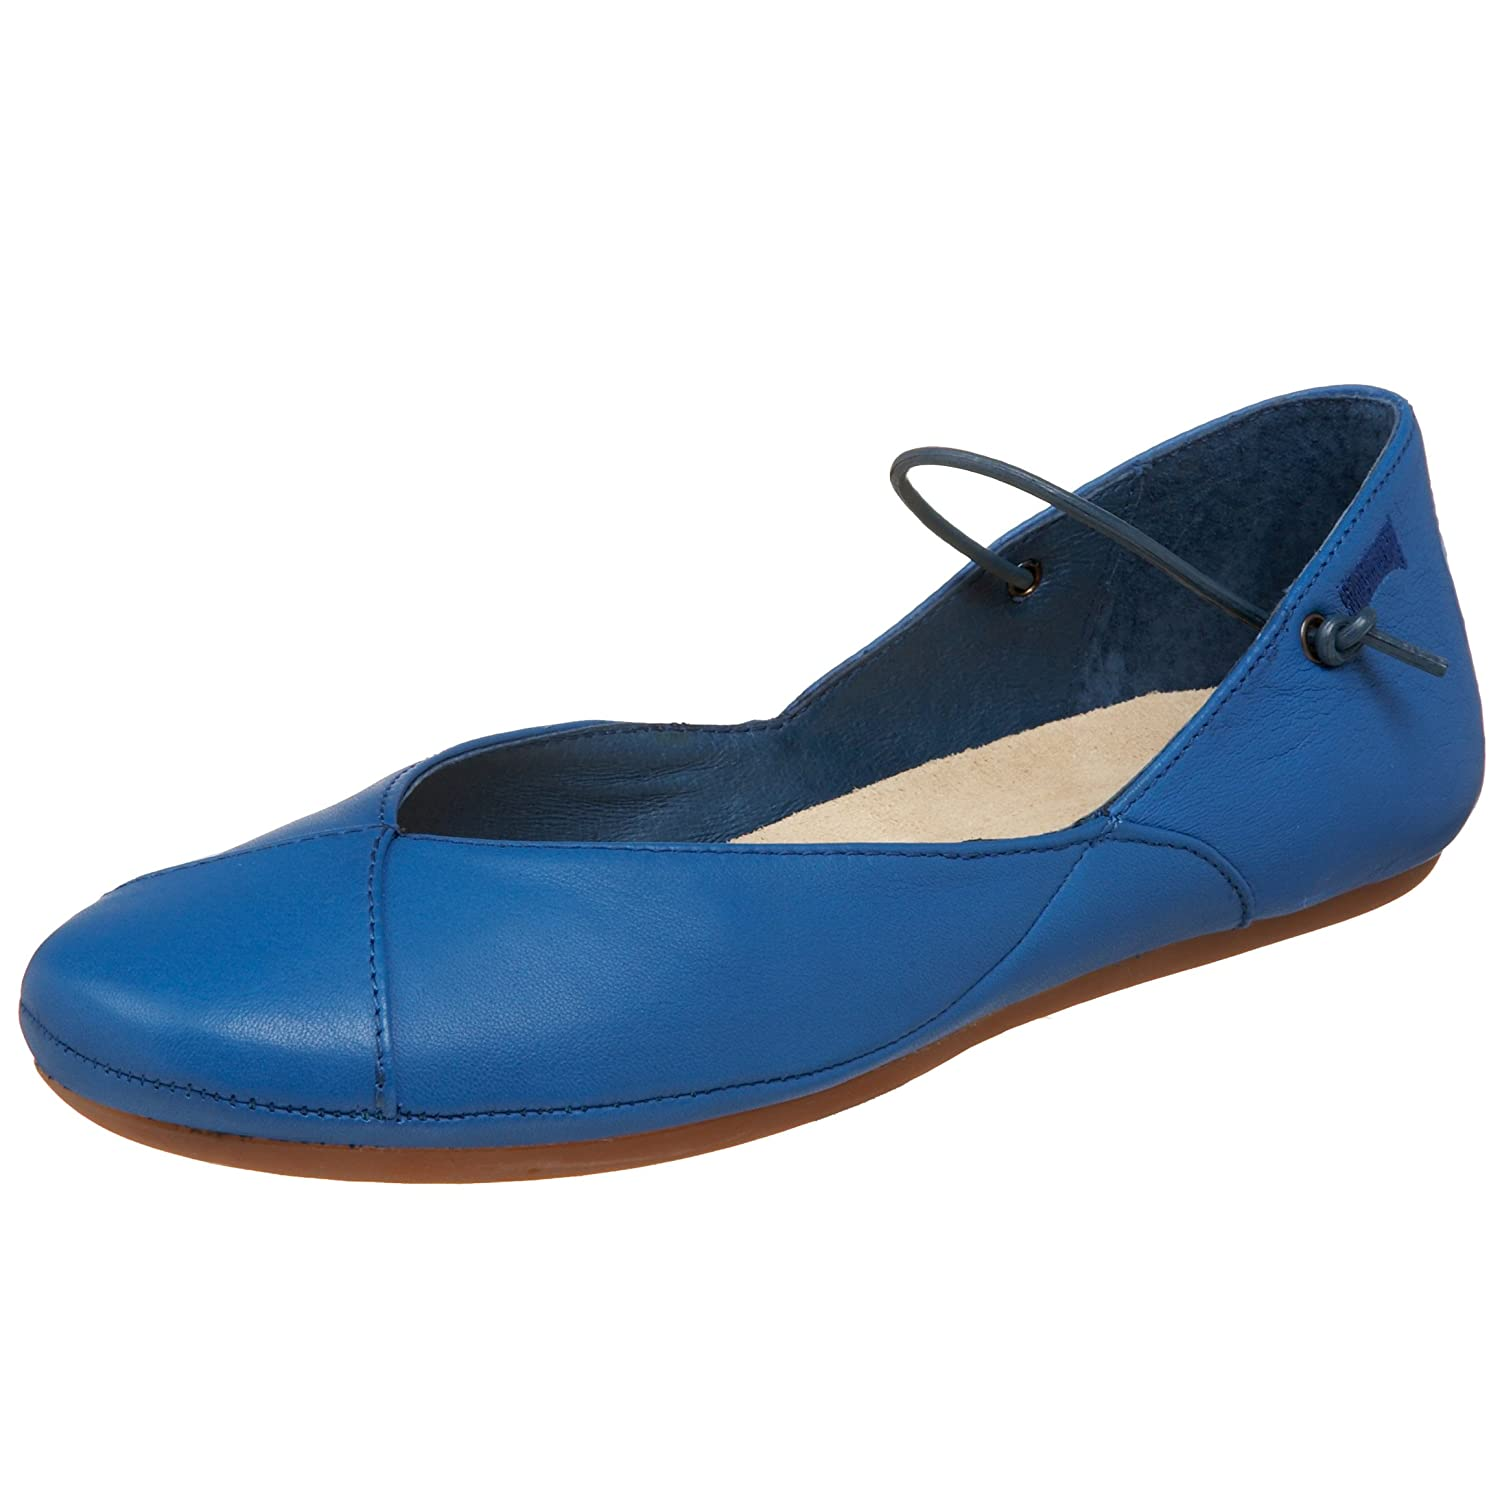 Camper 20957 005 Right Ballet Flat Free Overnight Shipping Return Shipping Endless com from endless.com